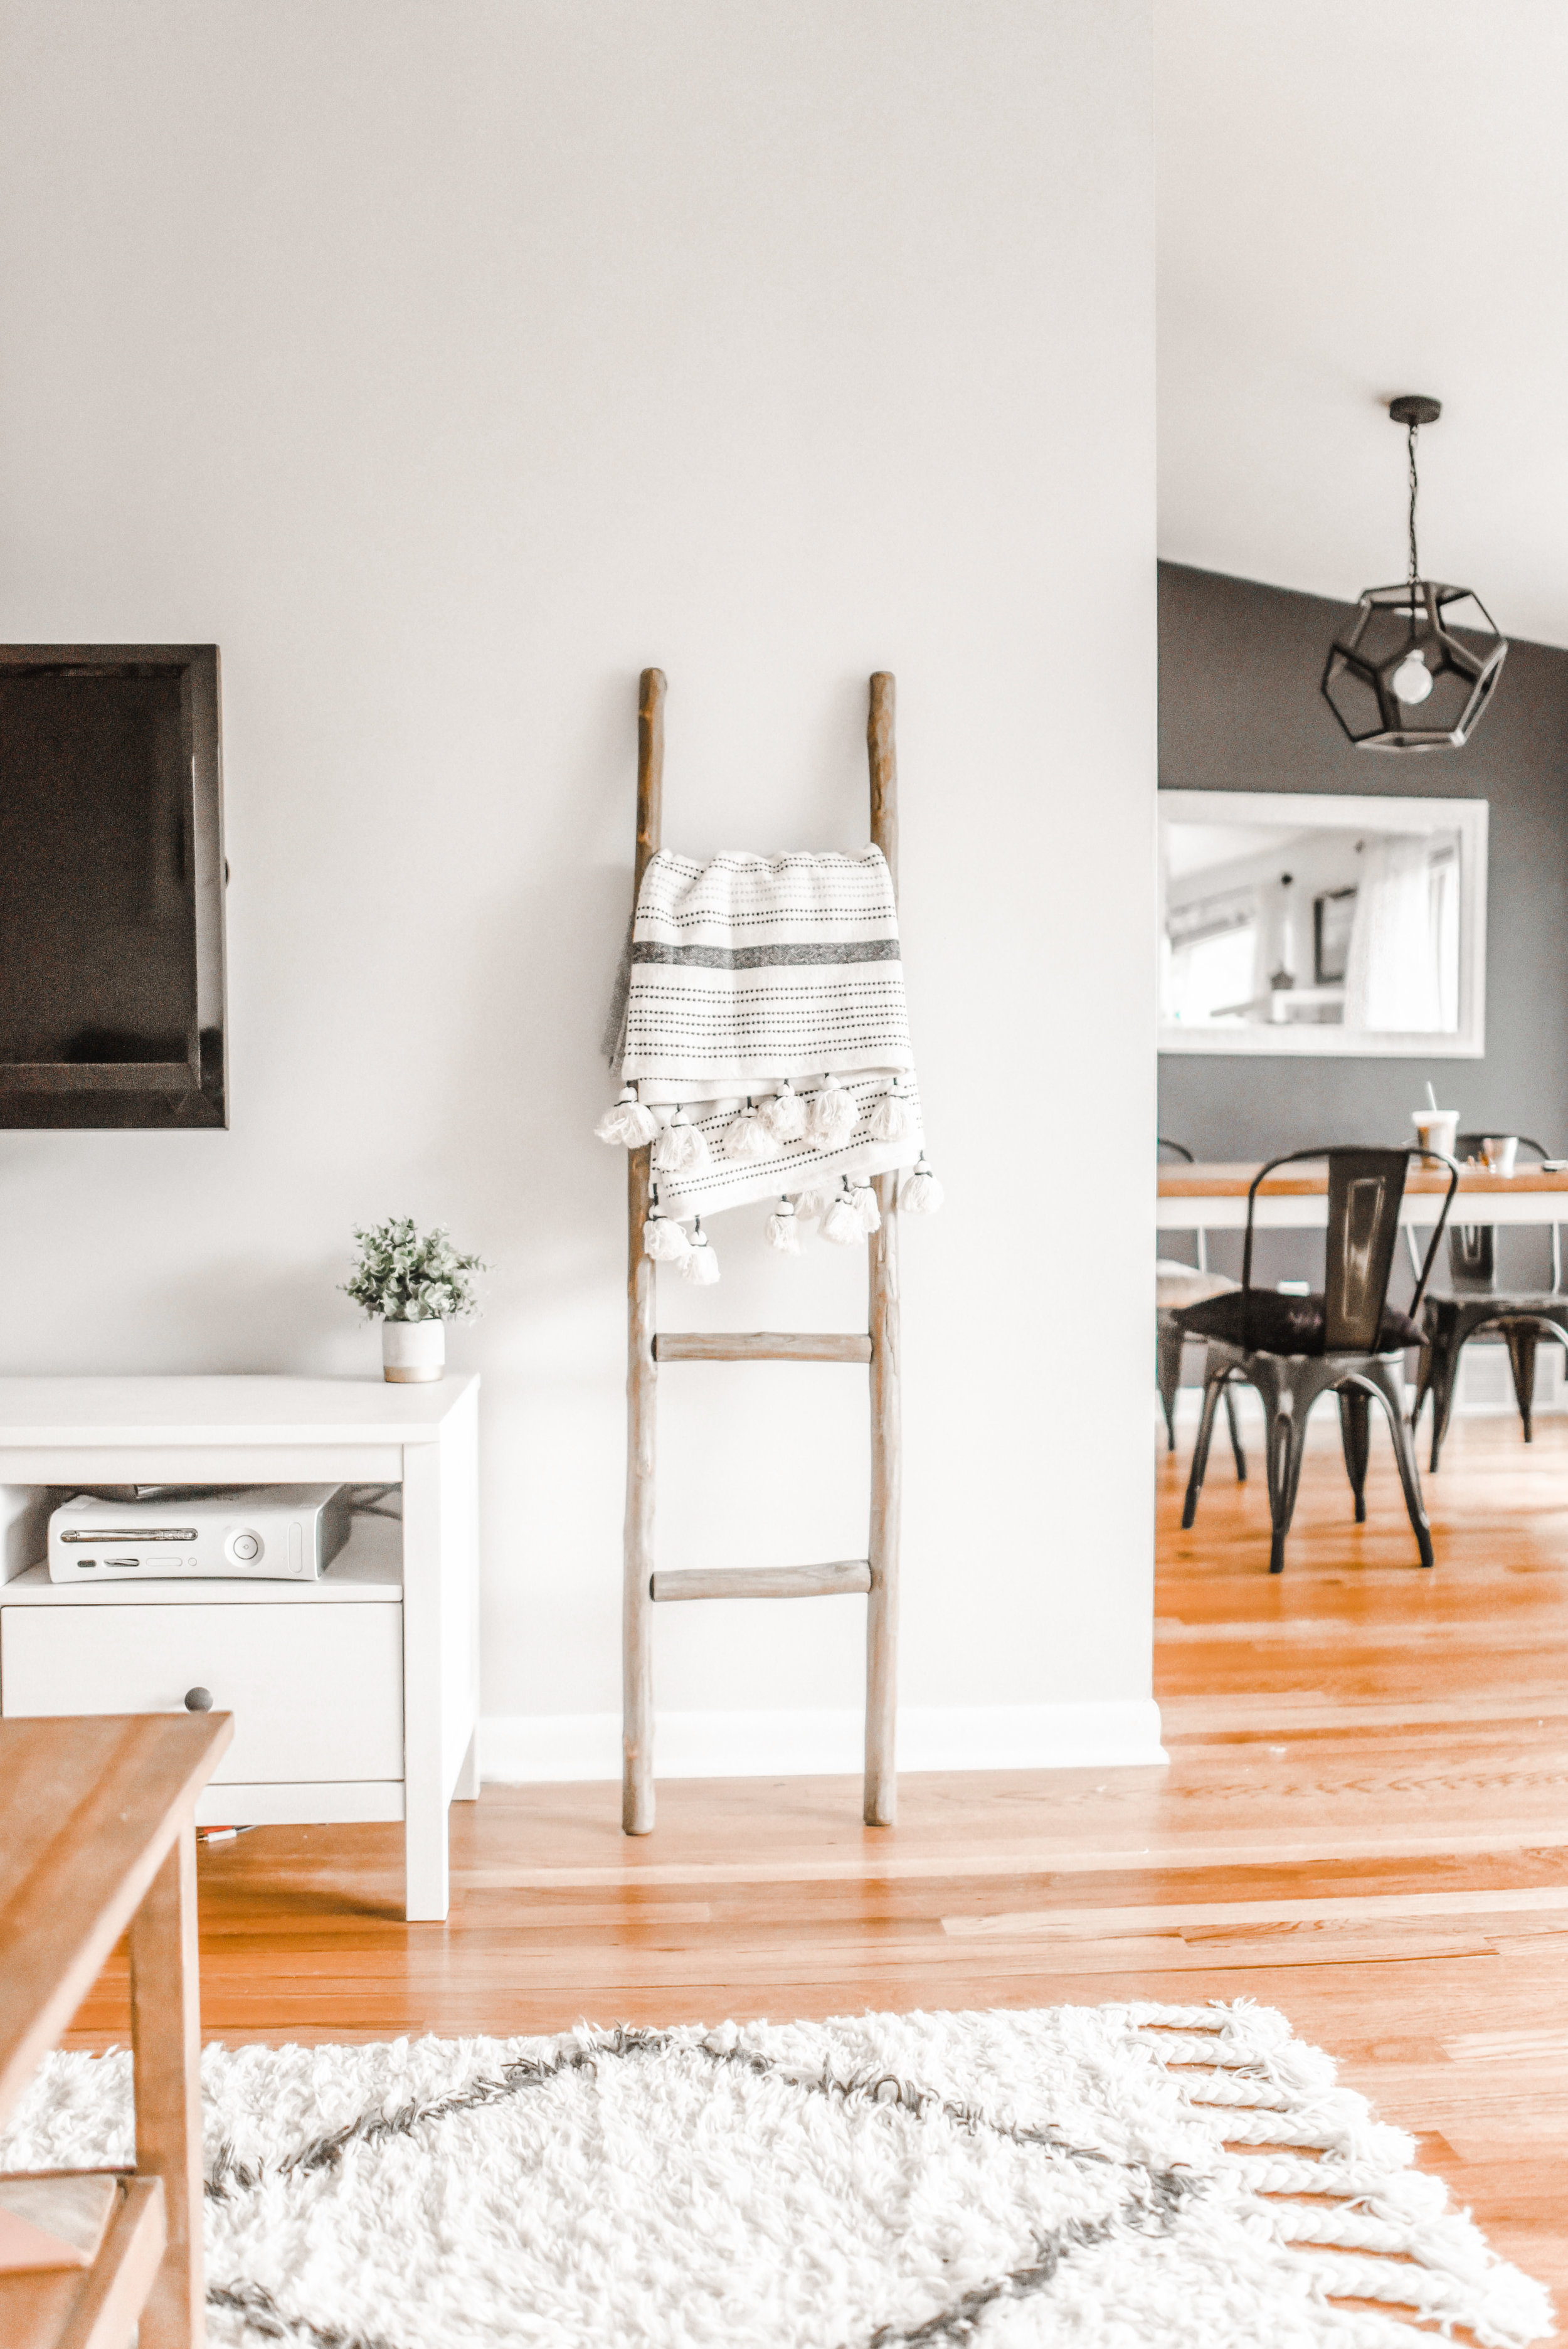 Hardwood floors and white walls flood this home with natural light designed by Elegant Simplicity Interiors.